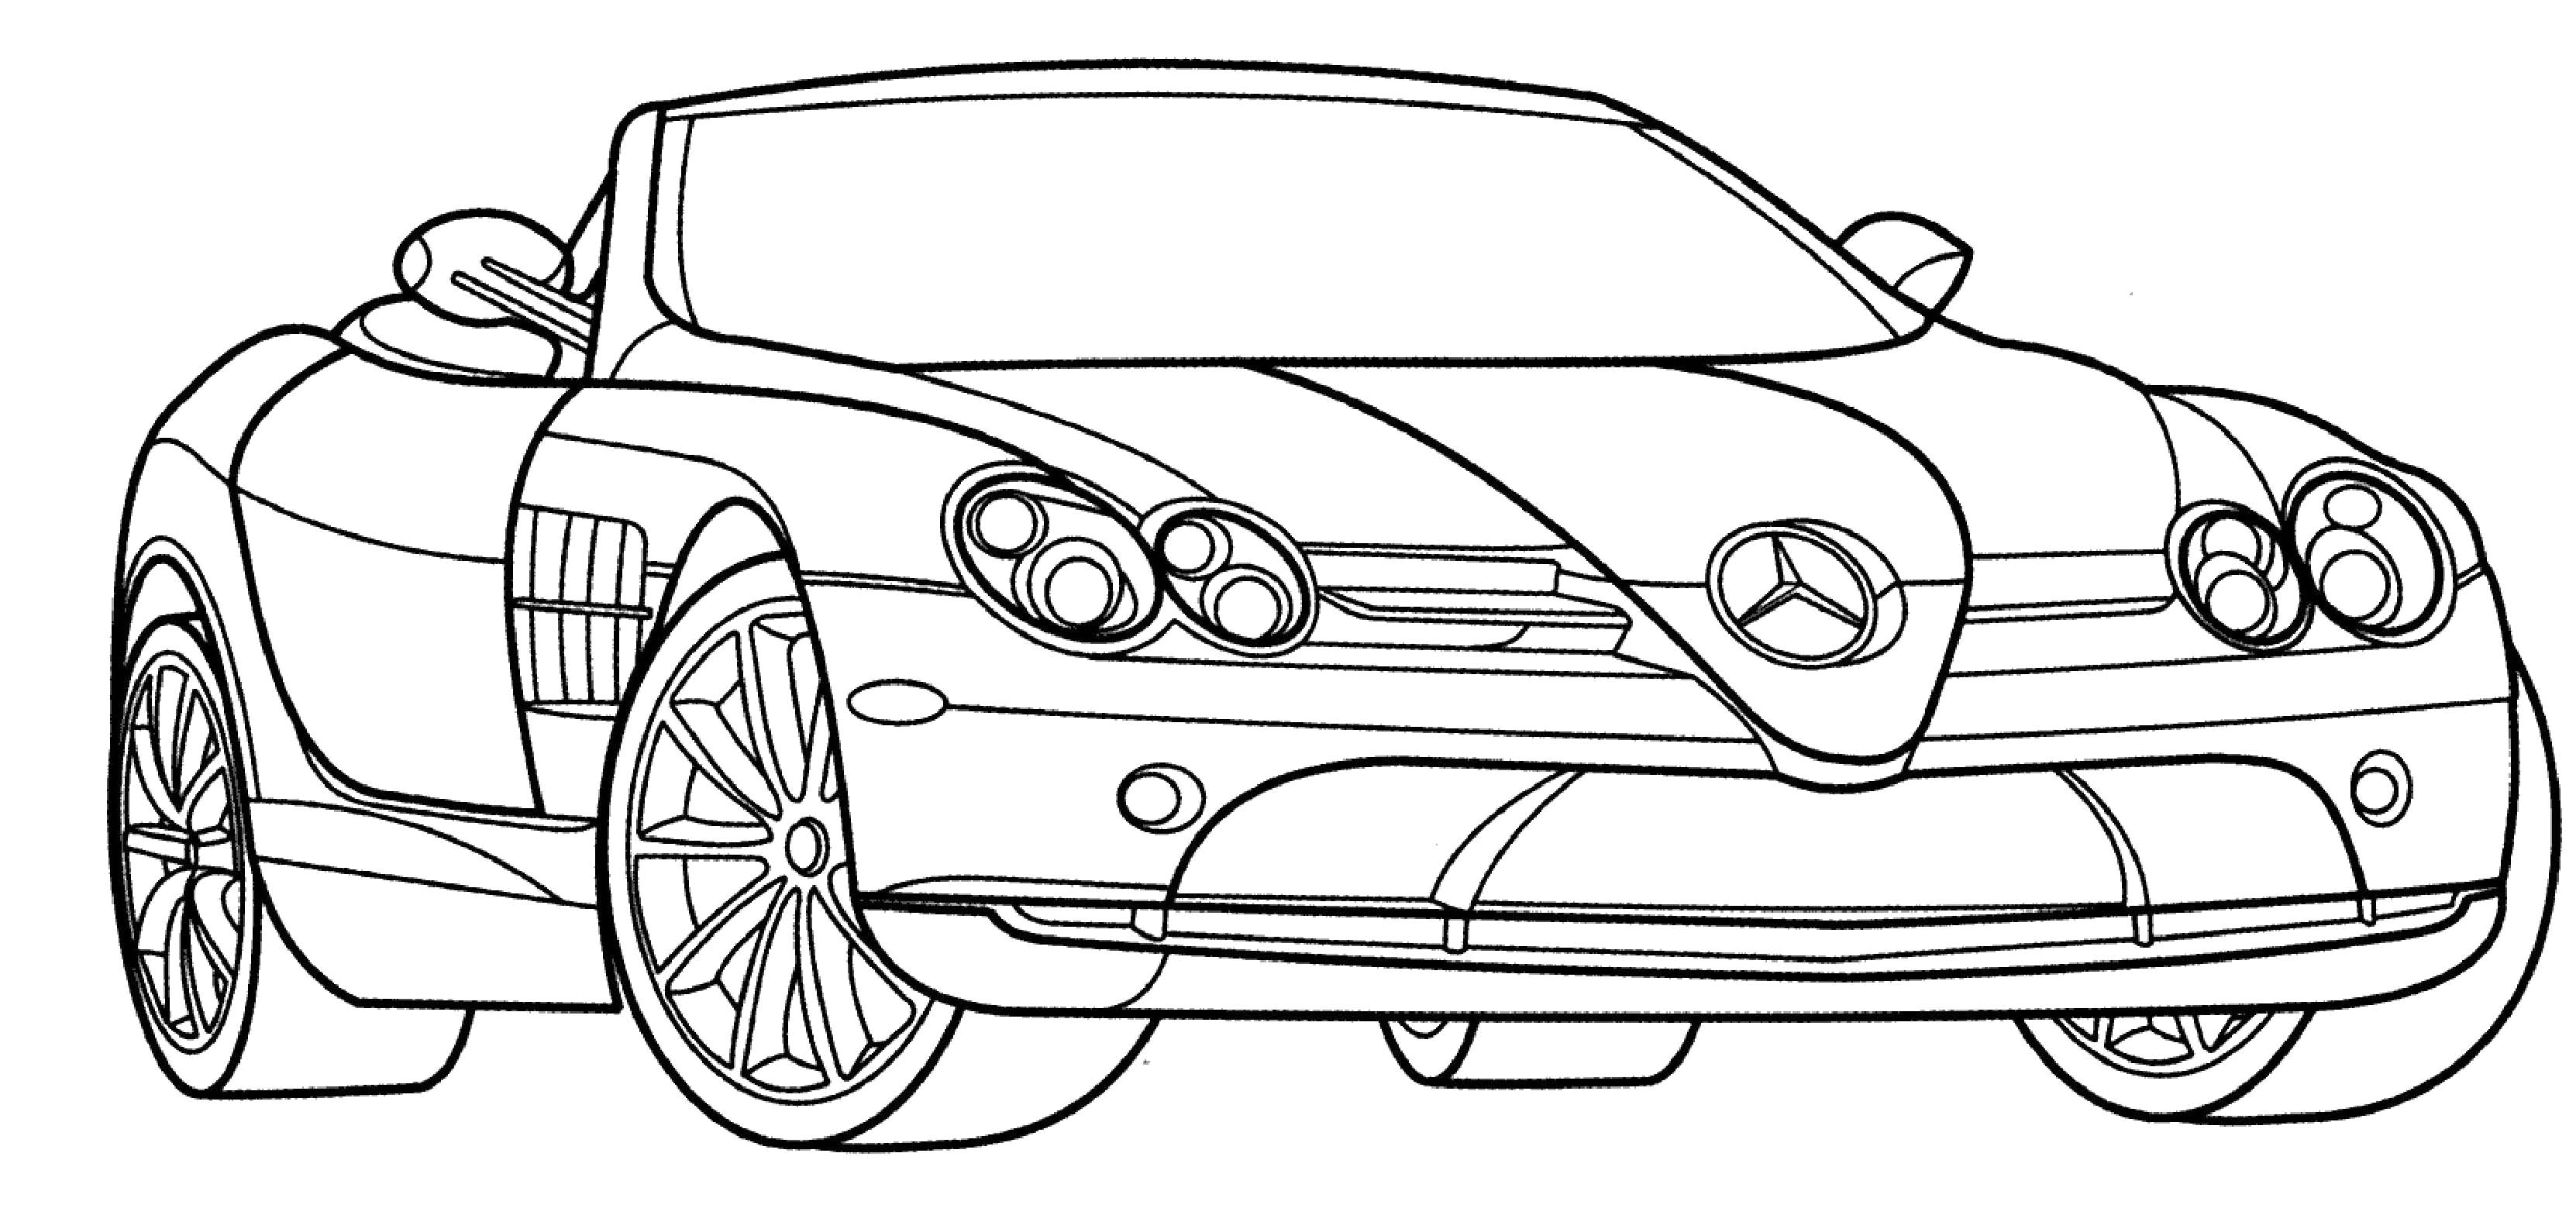 Coloring Pages Sports Cars to Print